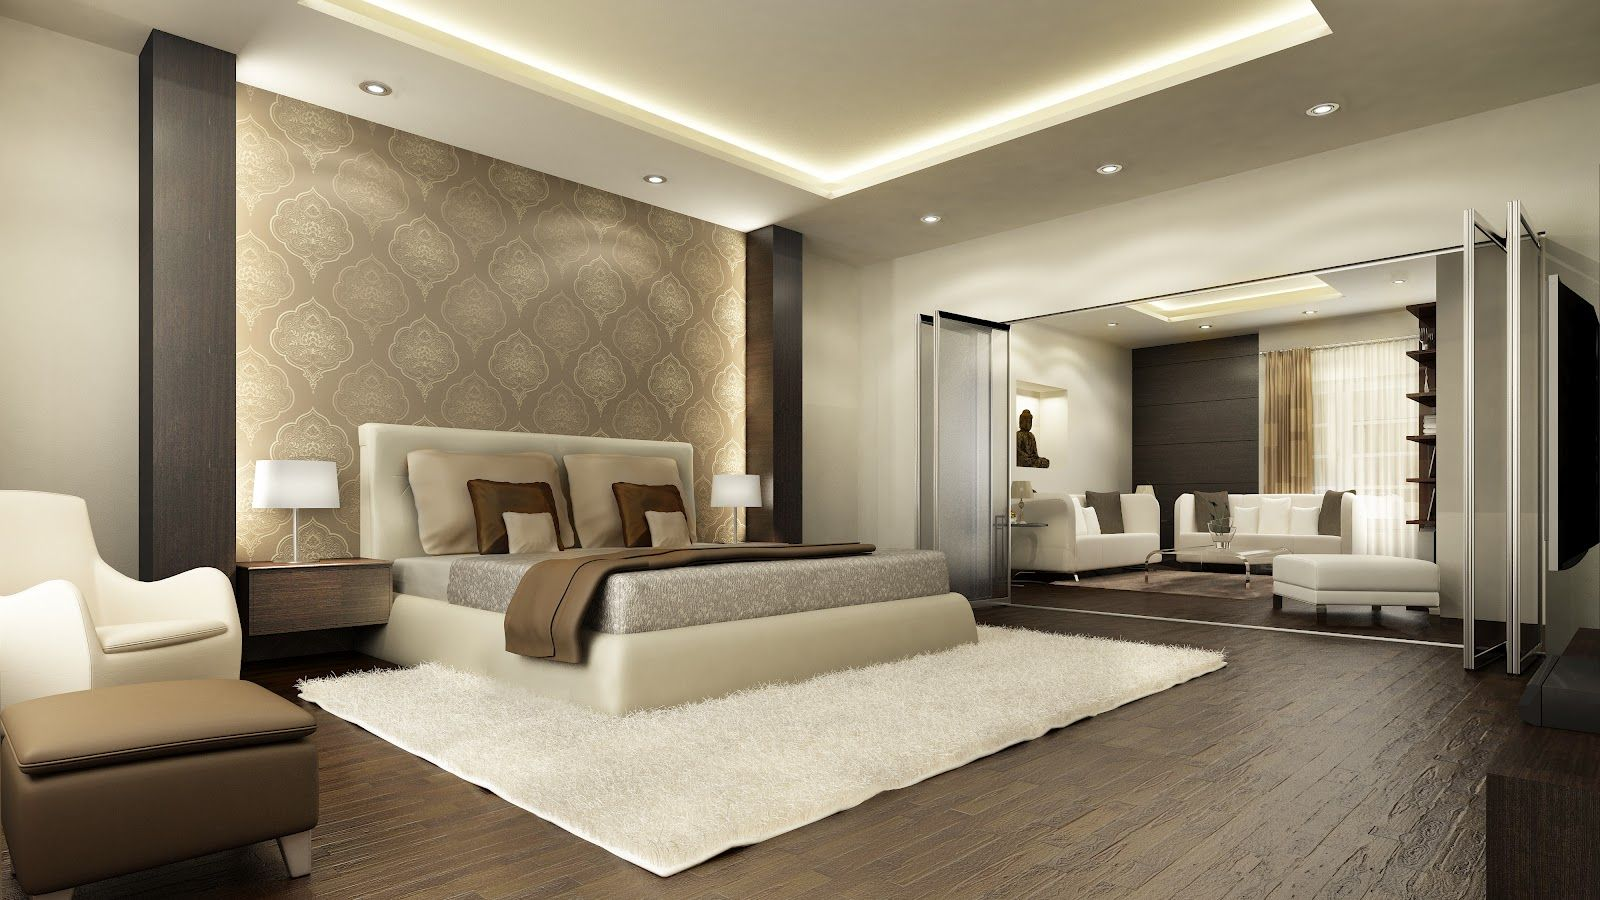 interior master bedroom design design master bedroom - Bedroom Decoration Design